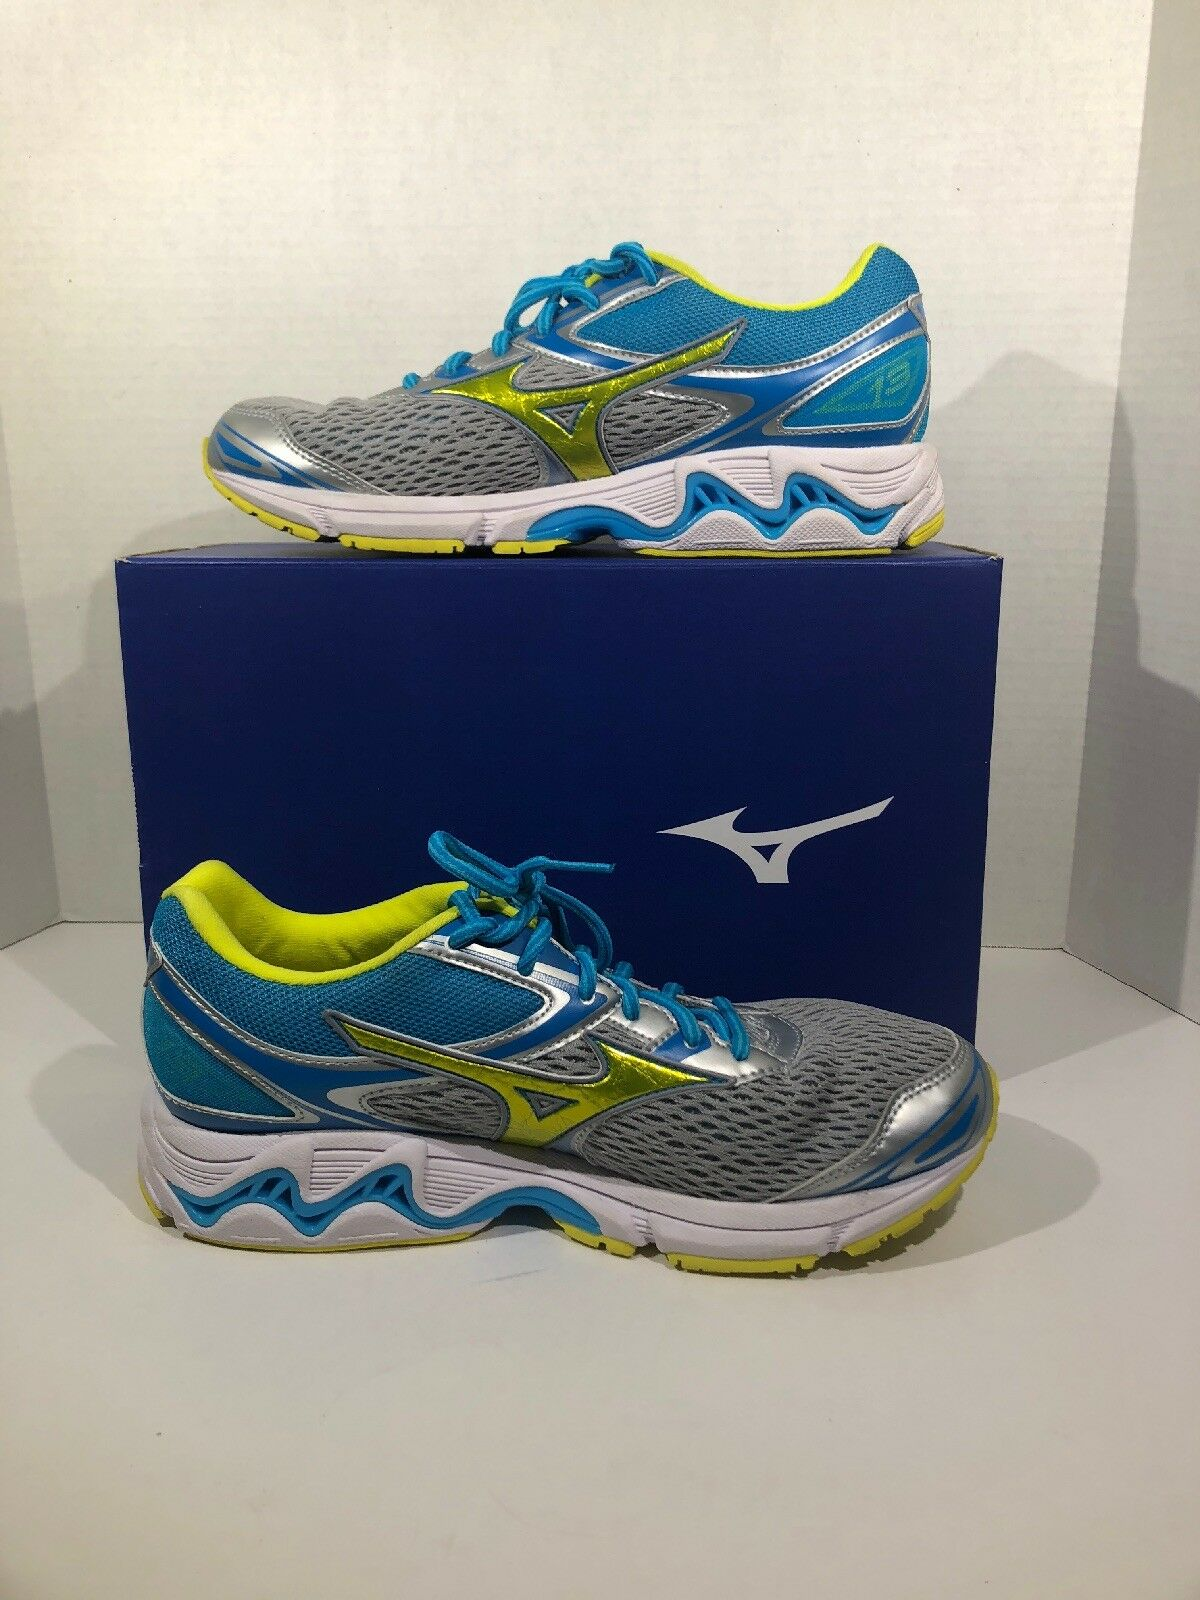 Mizuno Wave Inspire 13 Womens Size 10 Aqua Green Running Sneakers Shoes ZV-1721